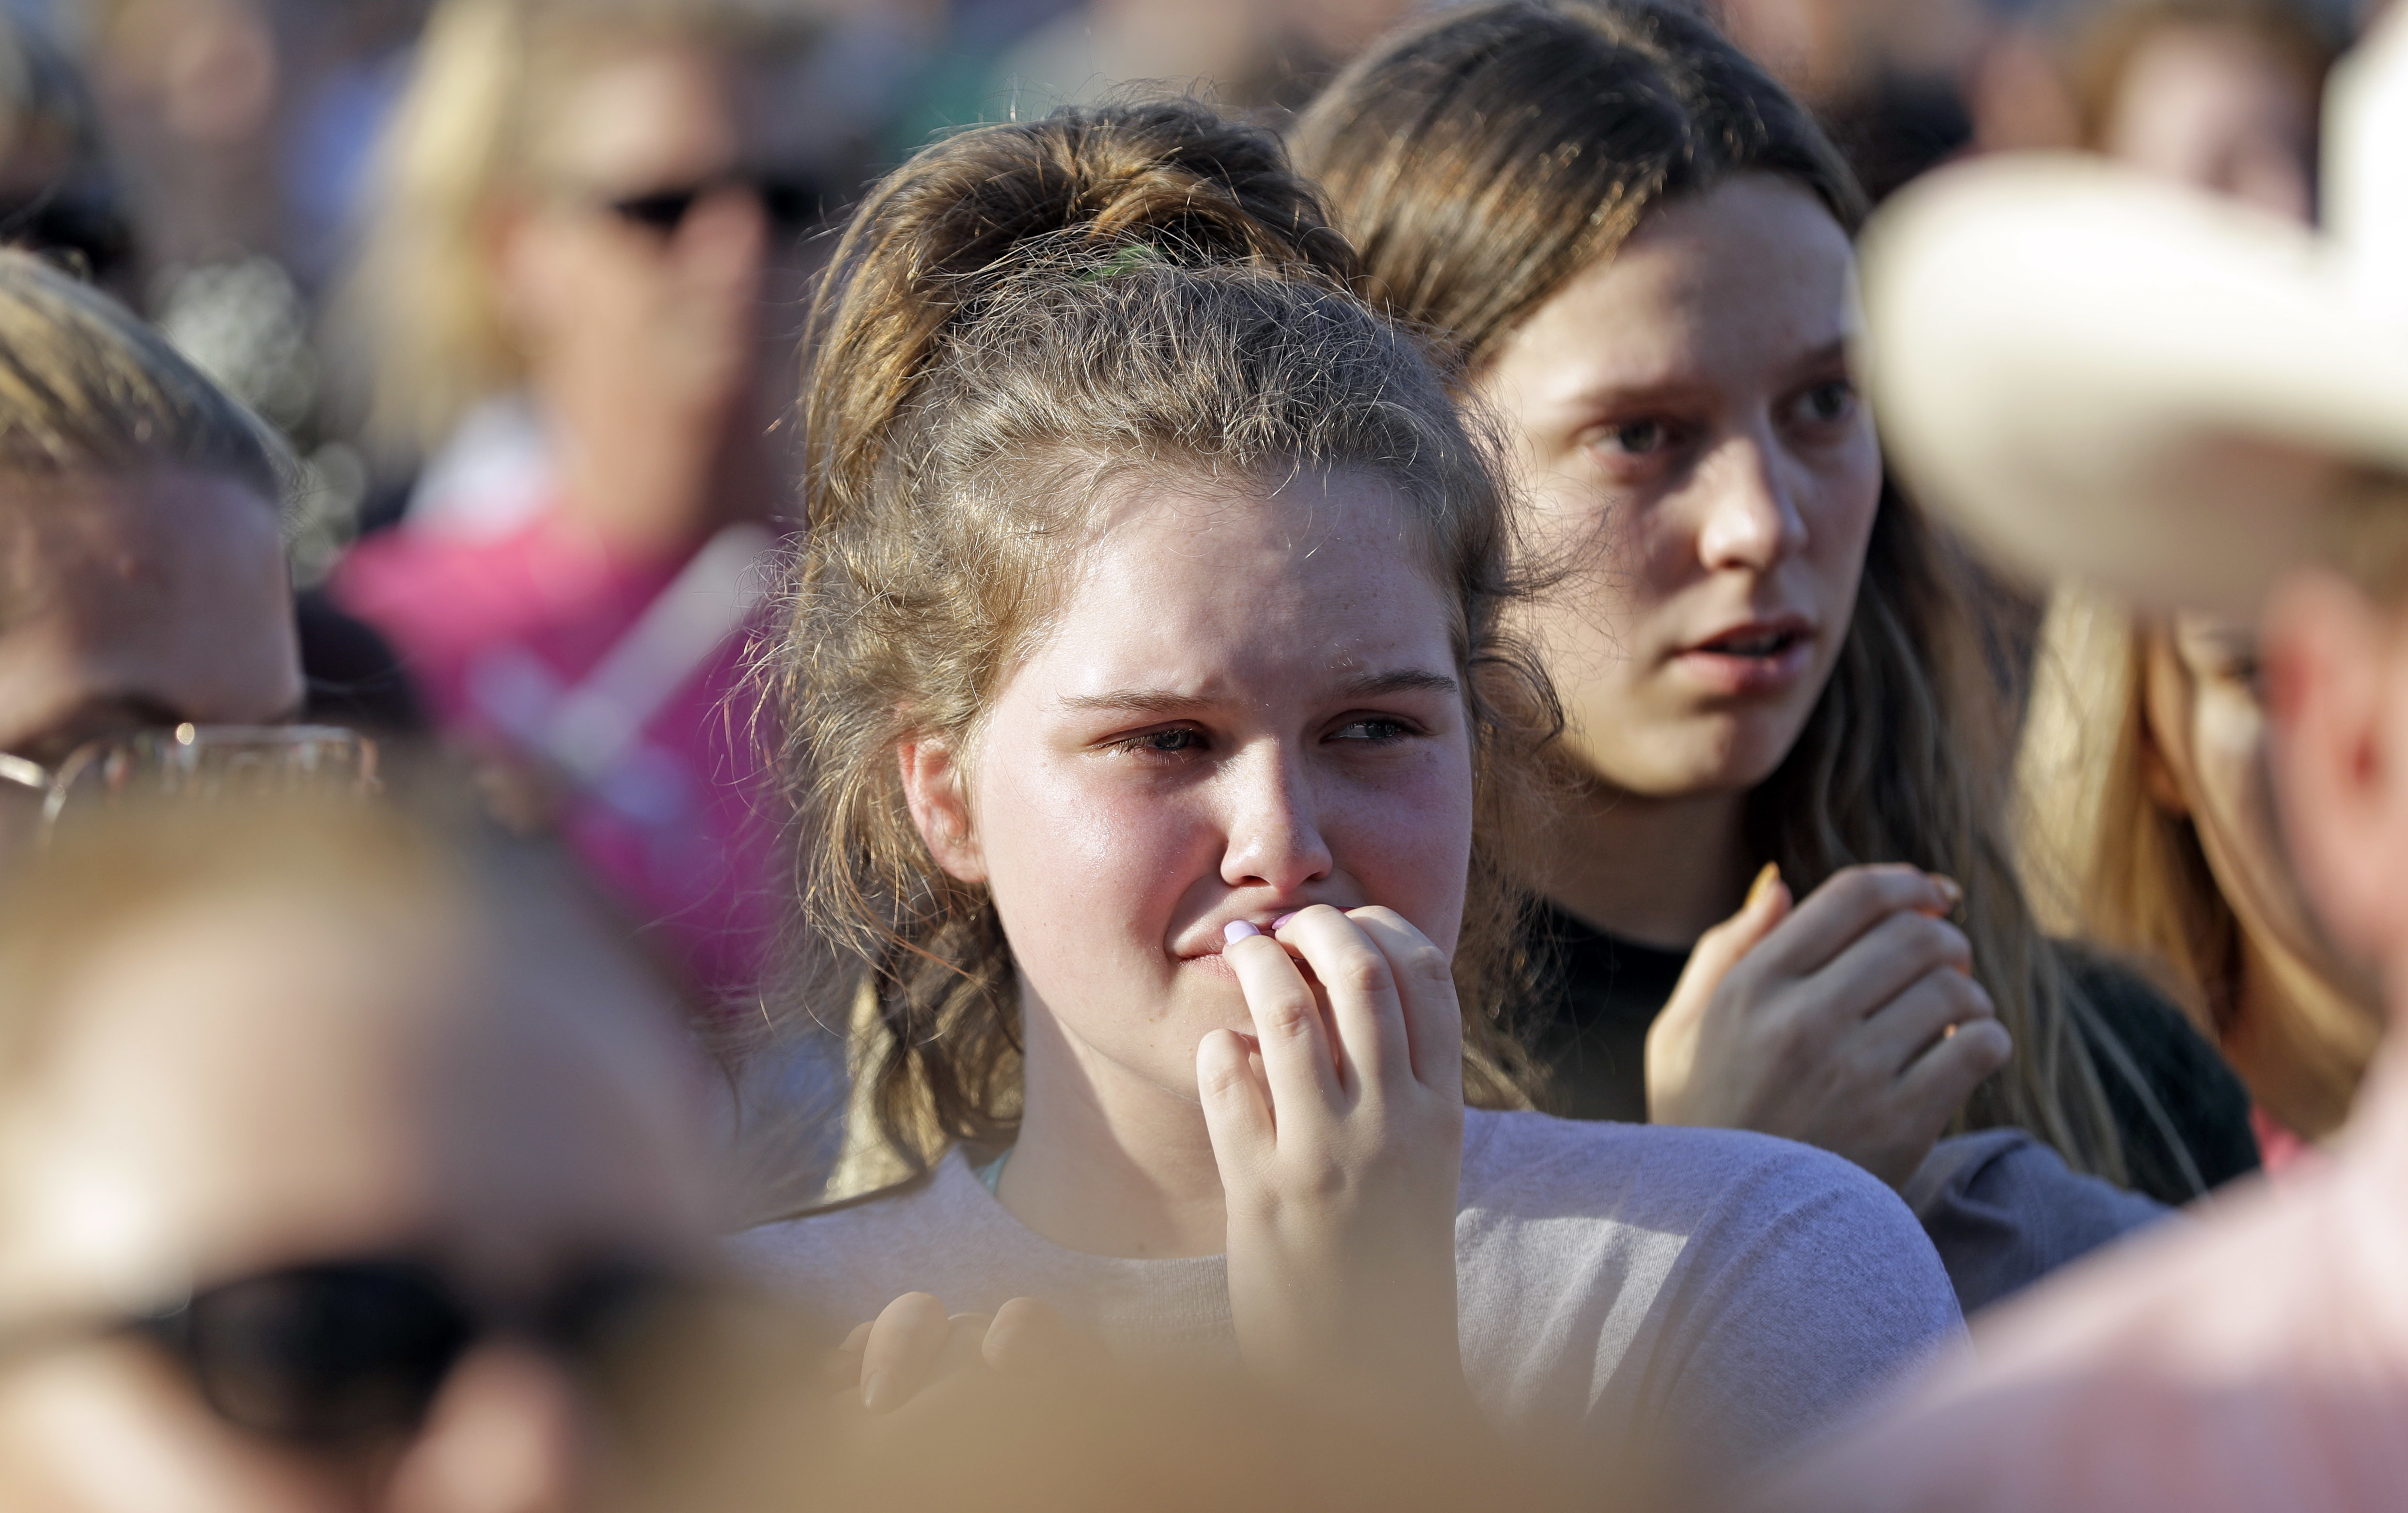 <div class='meta'><div class='origin-logo' data-origin='AP'></div><span class='caption-text' data-credit='AP'>Santa Fe High School sophomore Averi Gary listens during a prayer vigil following a shooting at Santa Fe High School. (AP Photo/David J. Phillip)</span></div>